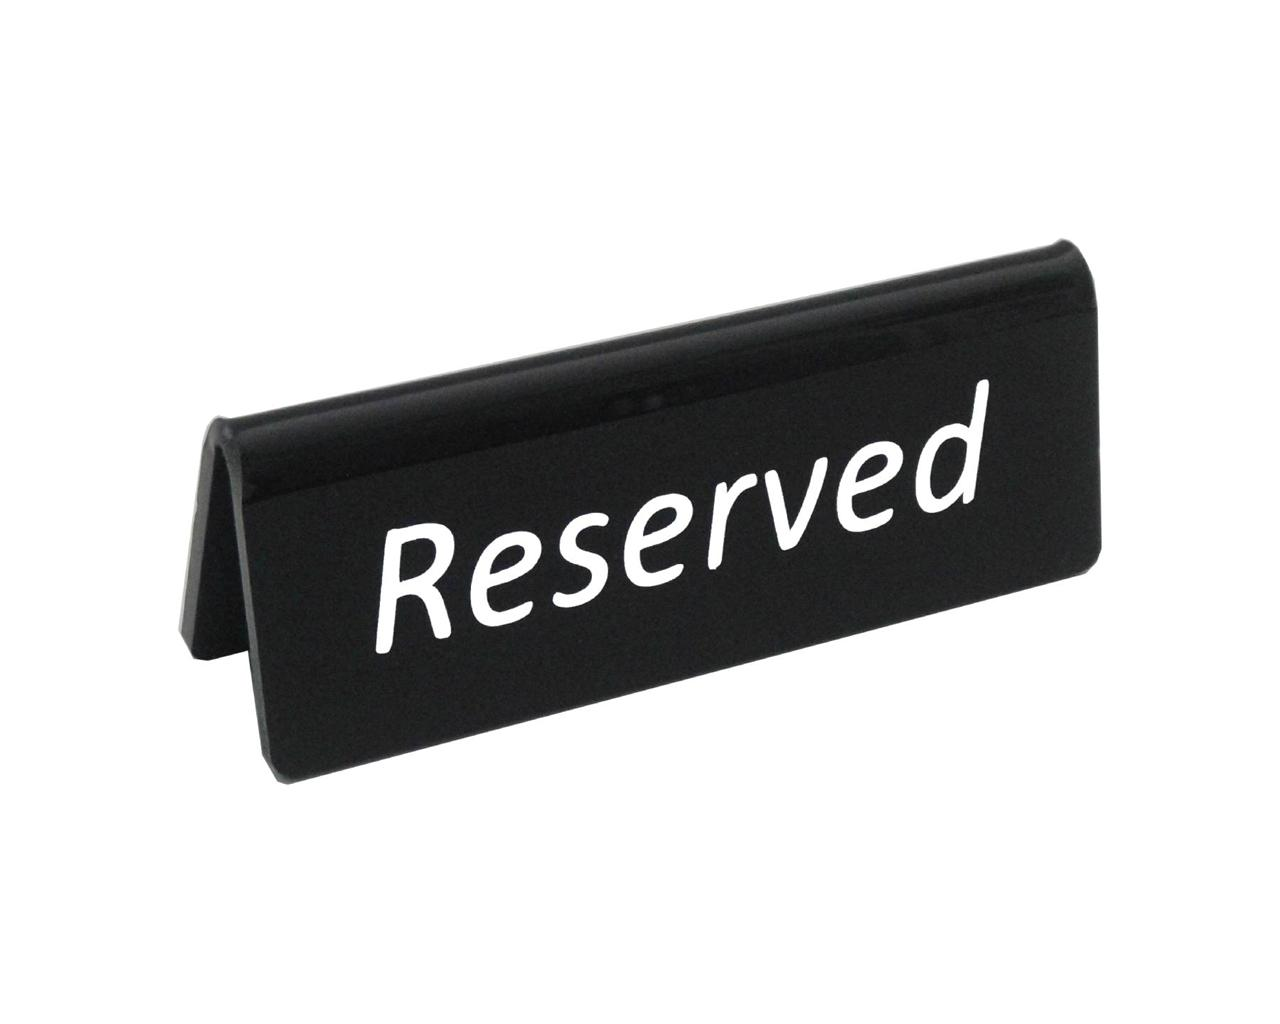 HIGH QUALITY RESTAURANT OR BAR PLASTIC RESERVED TABLE TABLETOP - Restaurant table signs